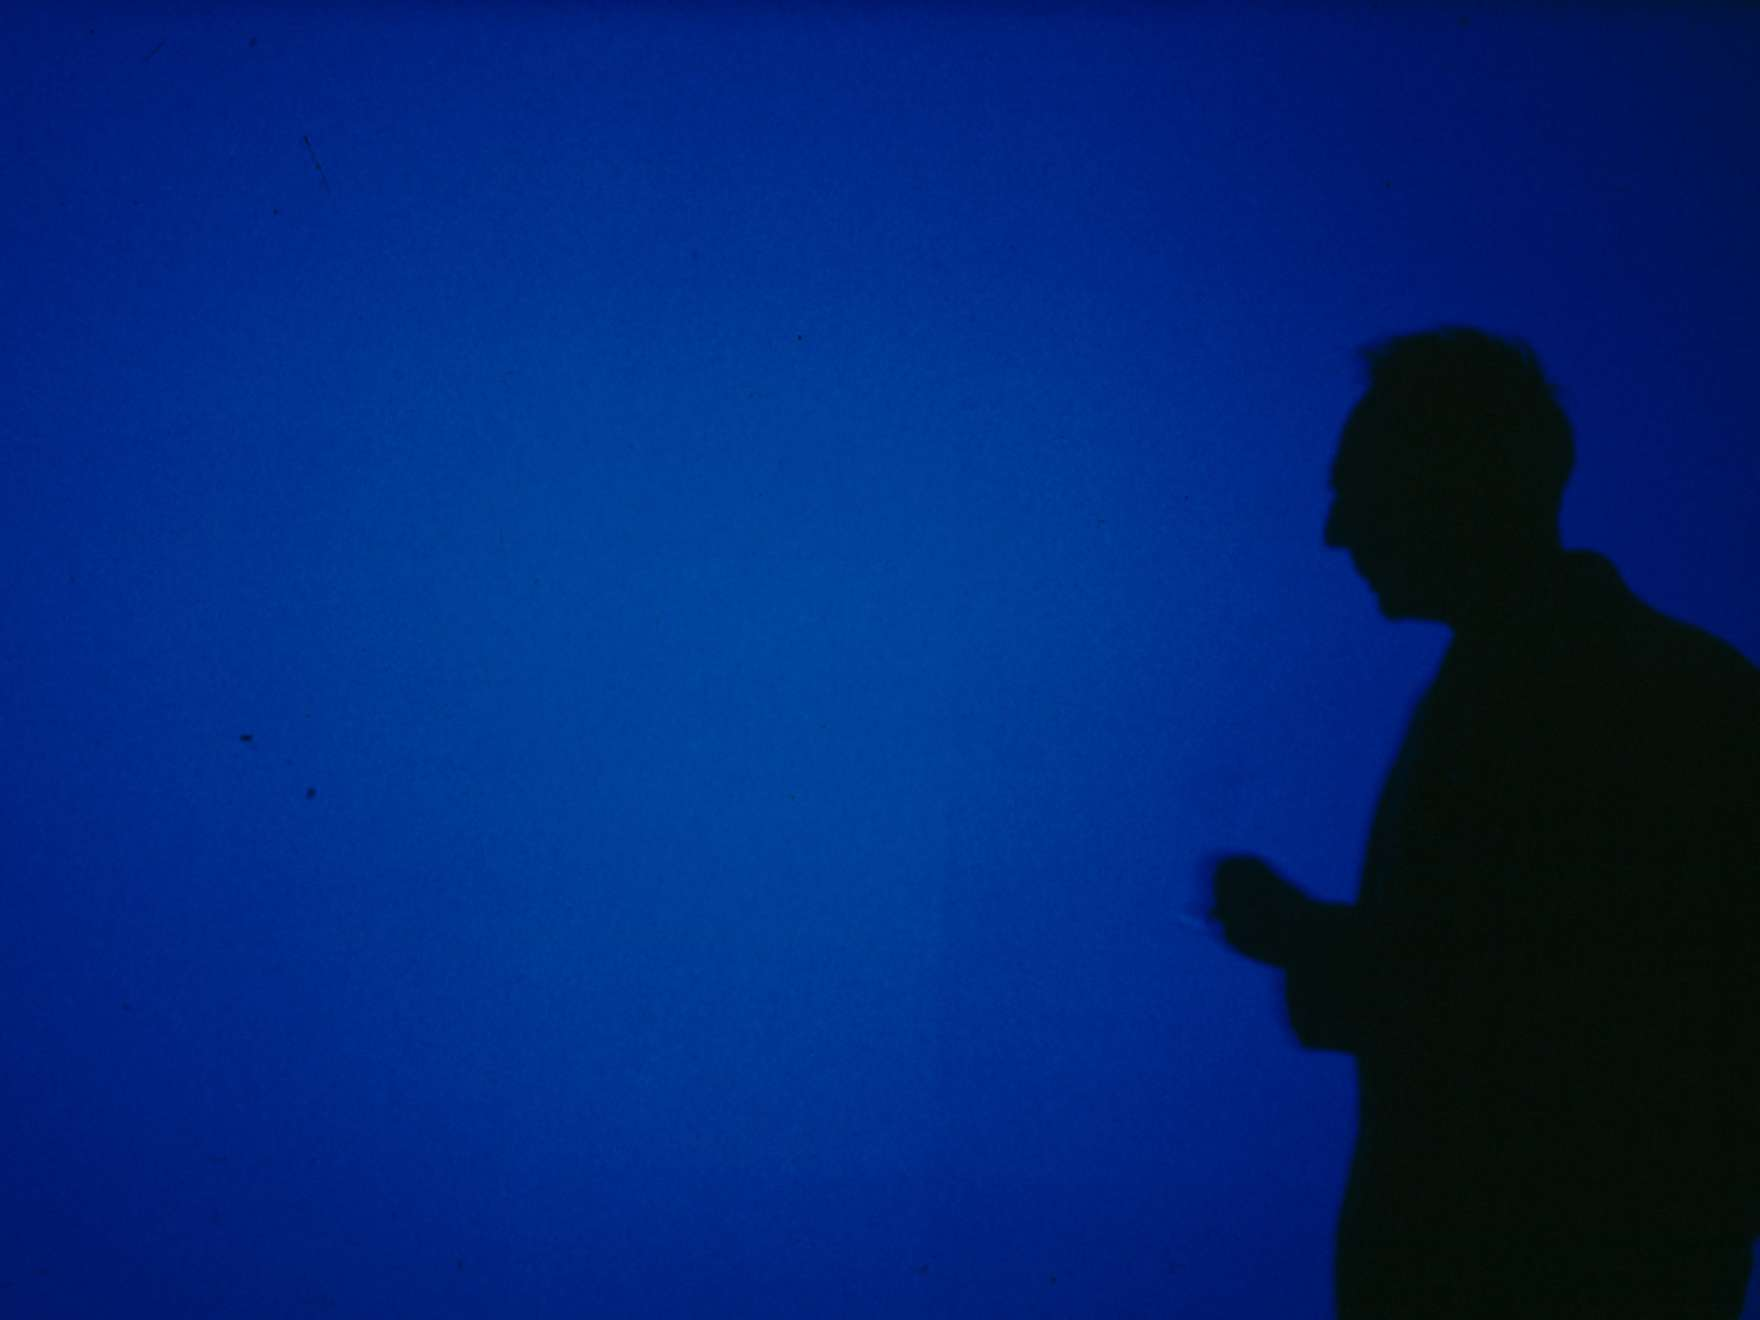 Blue - Derek Jarman, Darkness Made Visible